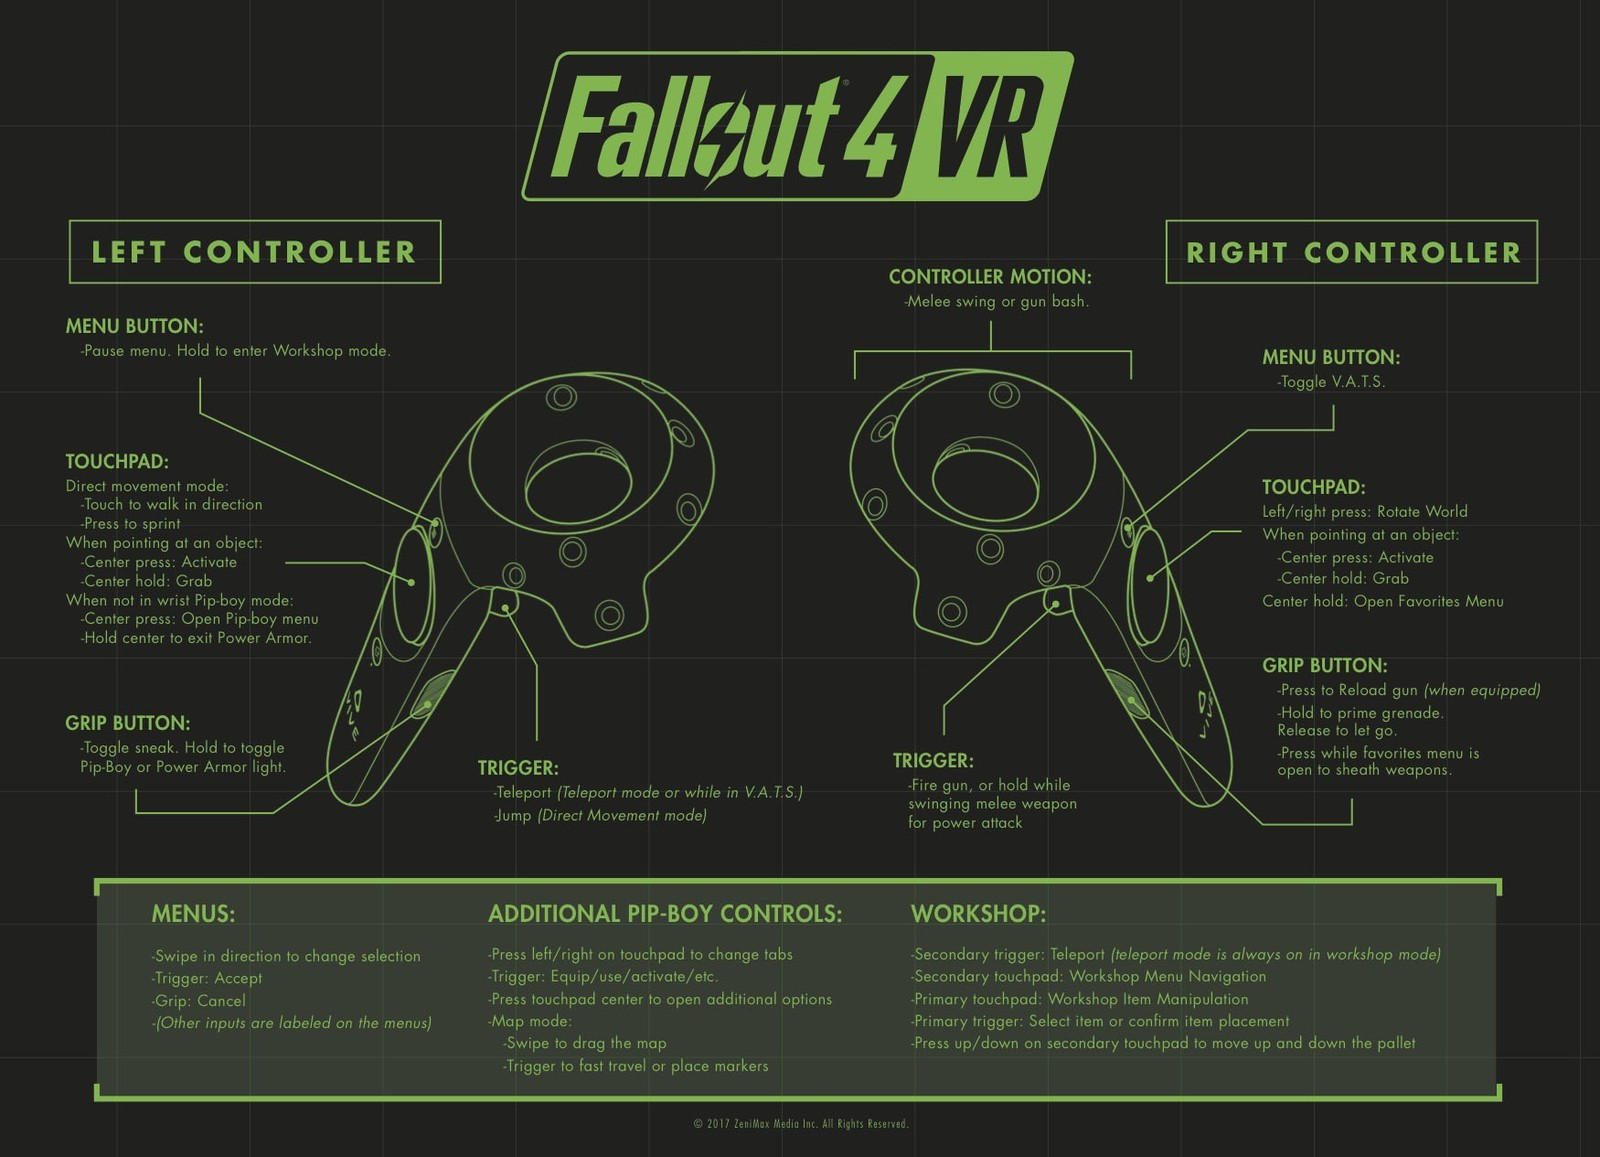 6655fcaf331 ICYMI - Fallout 4® VR is now available!